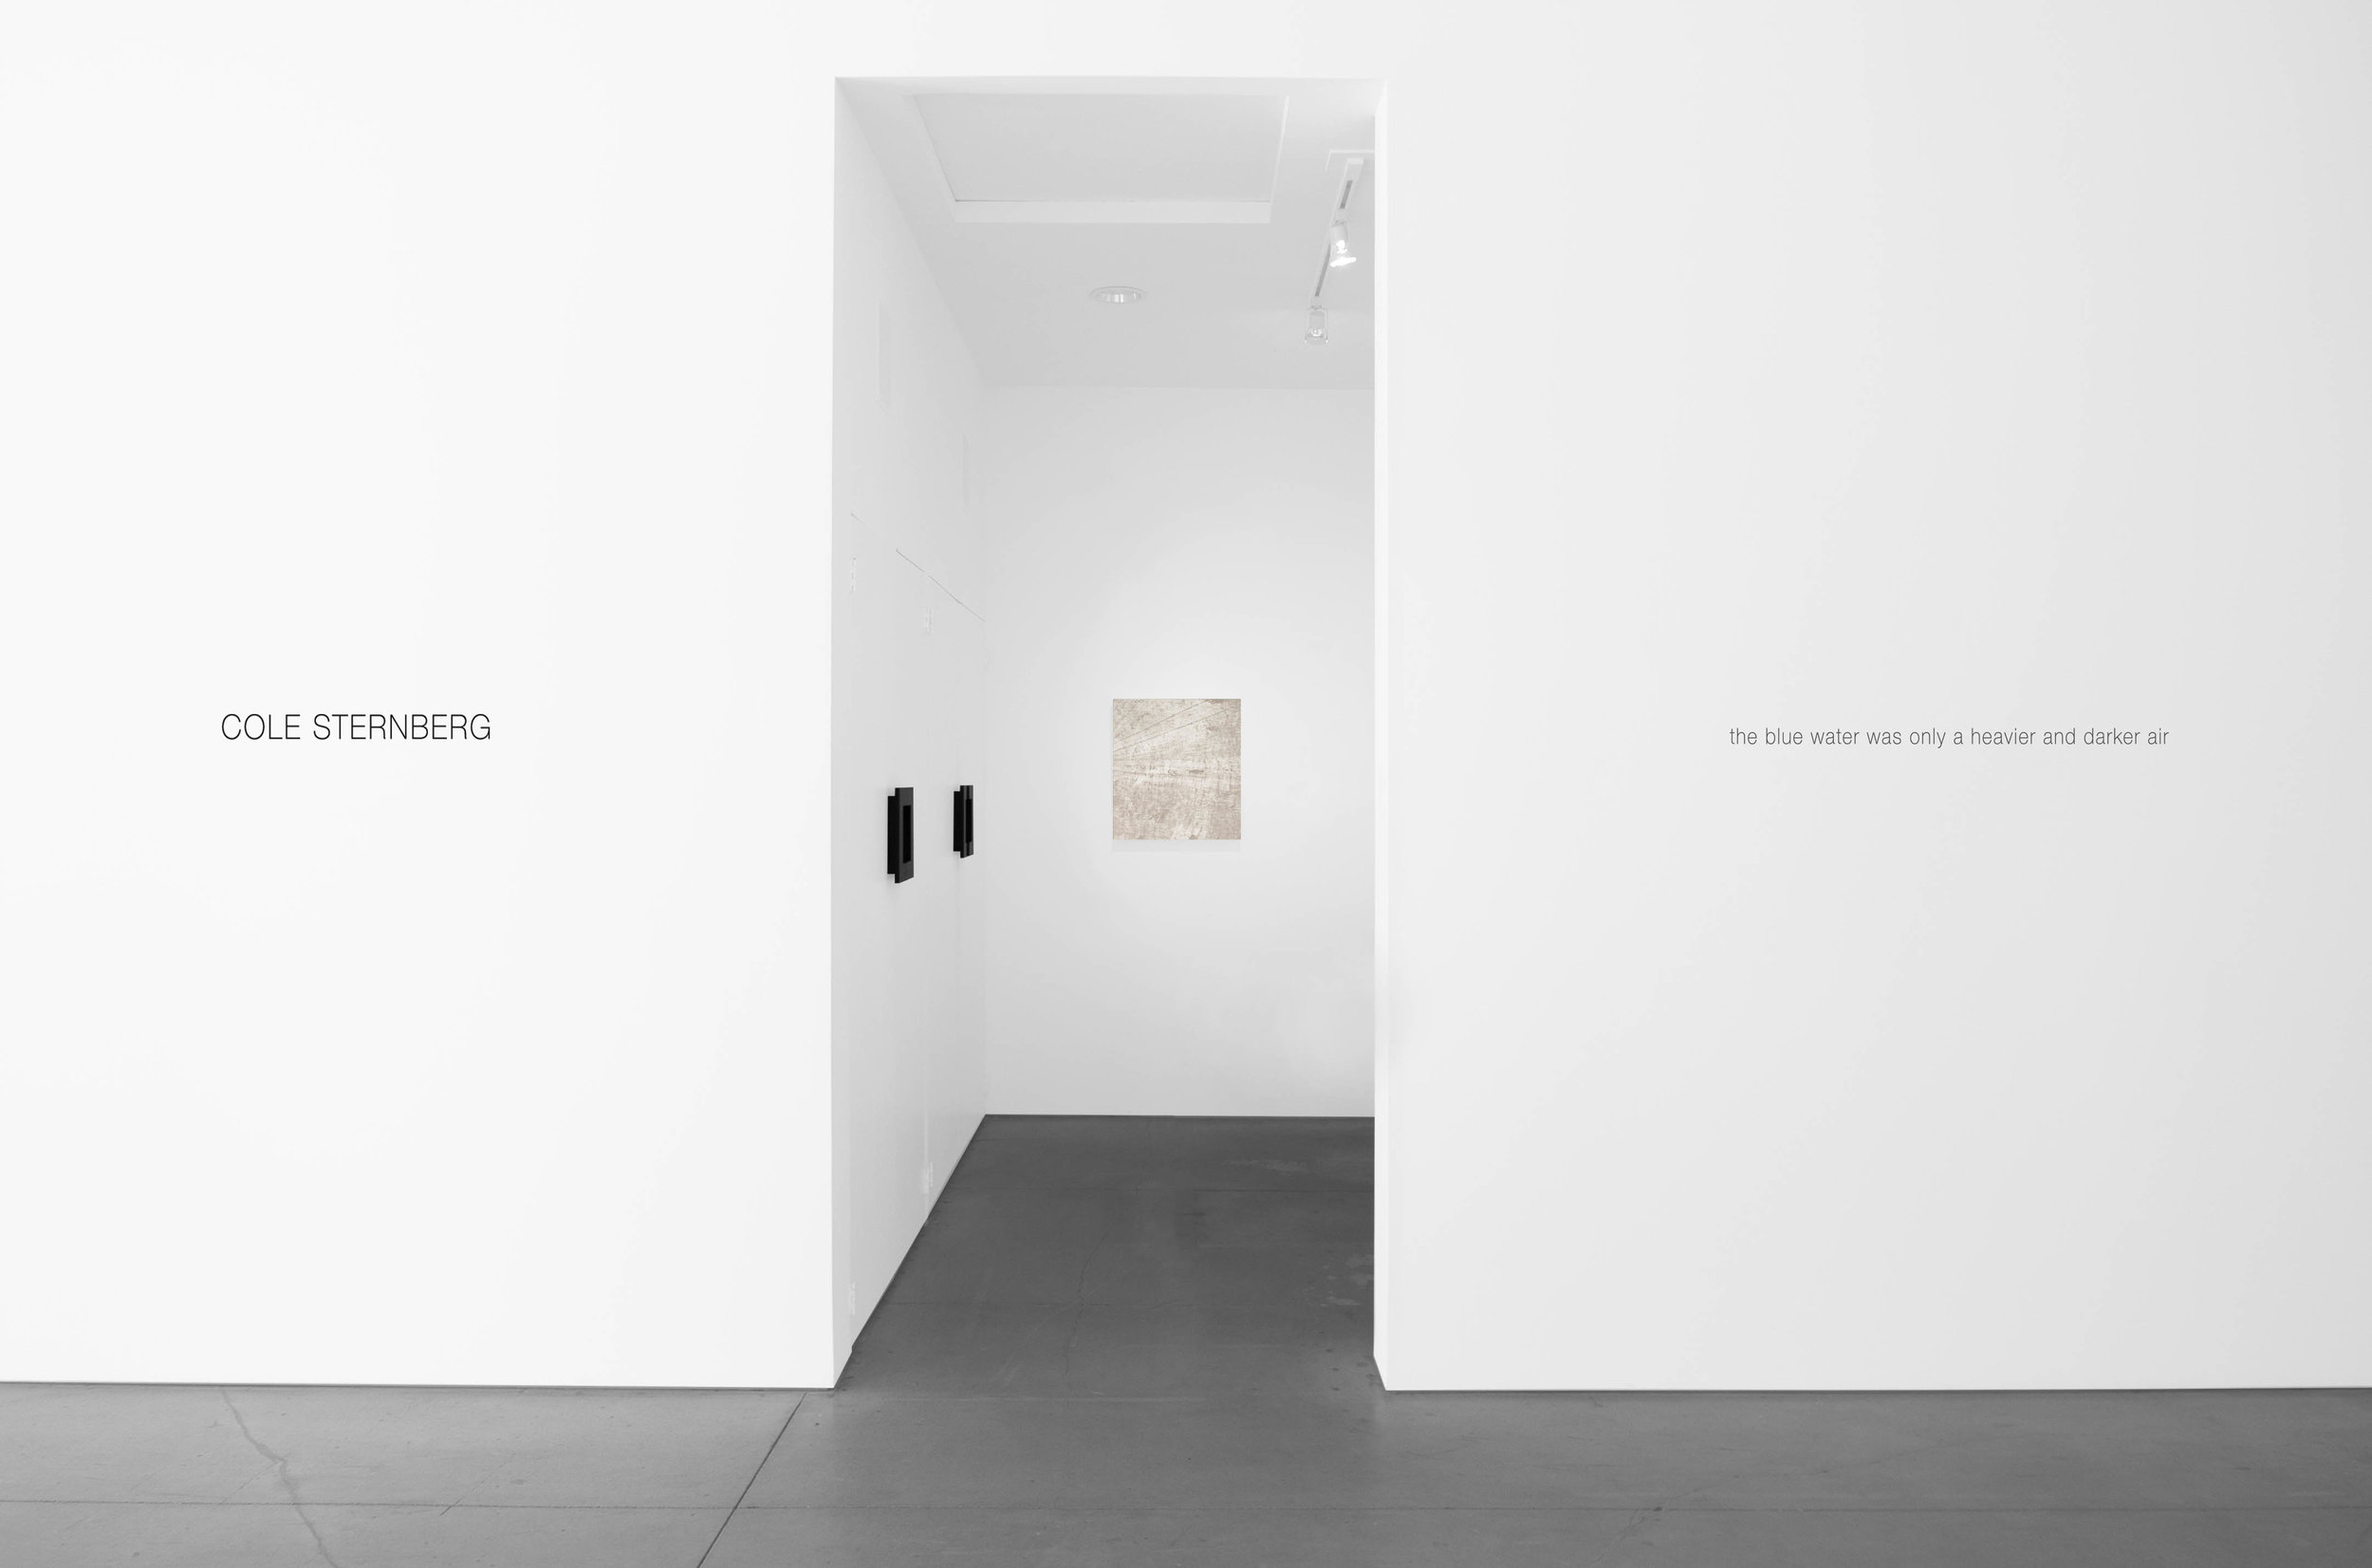 Cole Sternberg Solo Exhibition 2019_Peter Blake Gallery_Installation View_11.jpg